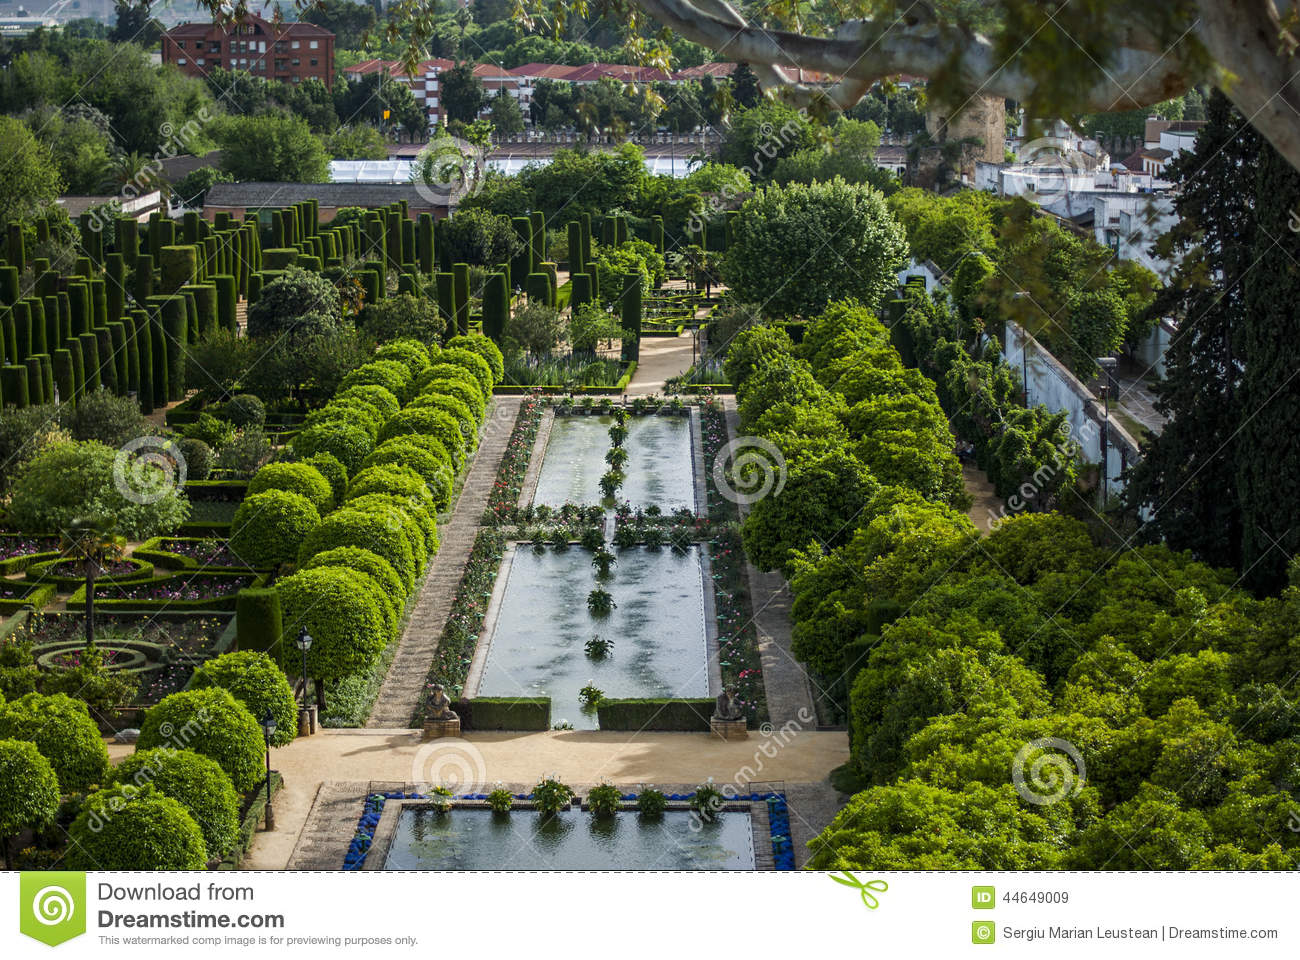 Les jardins de l 39 alcazar cordoue photo stock image for Les jardins de